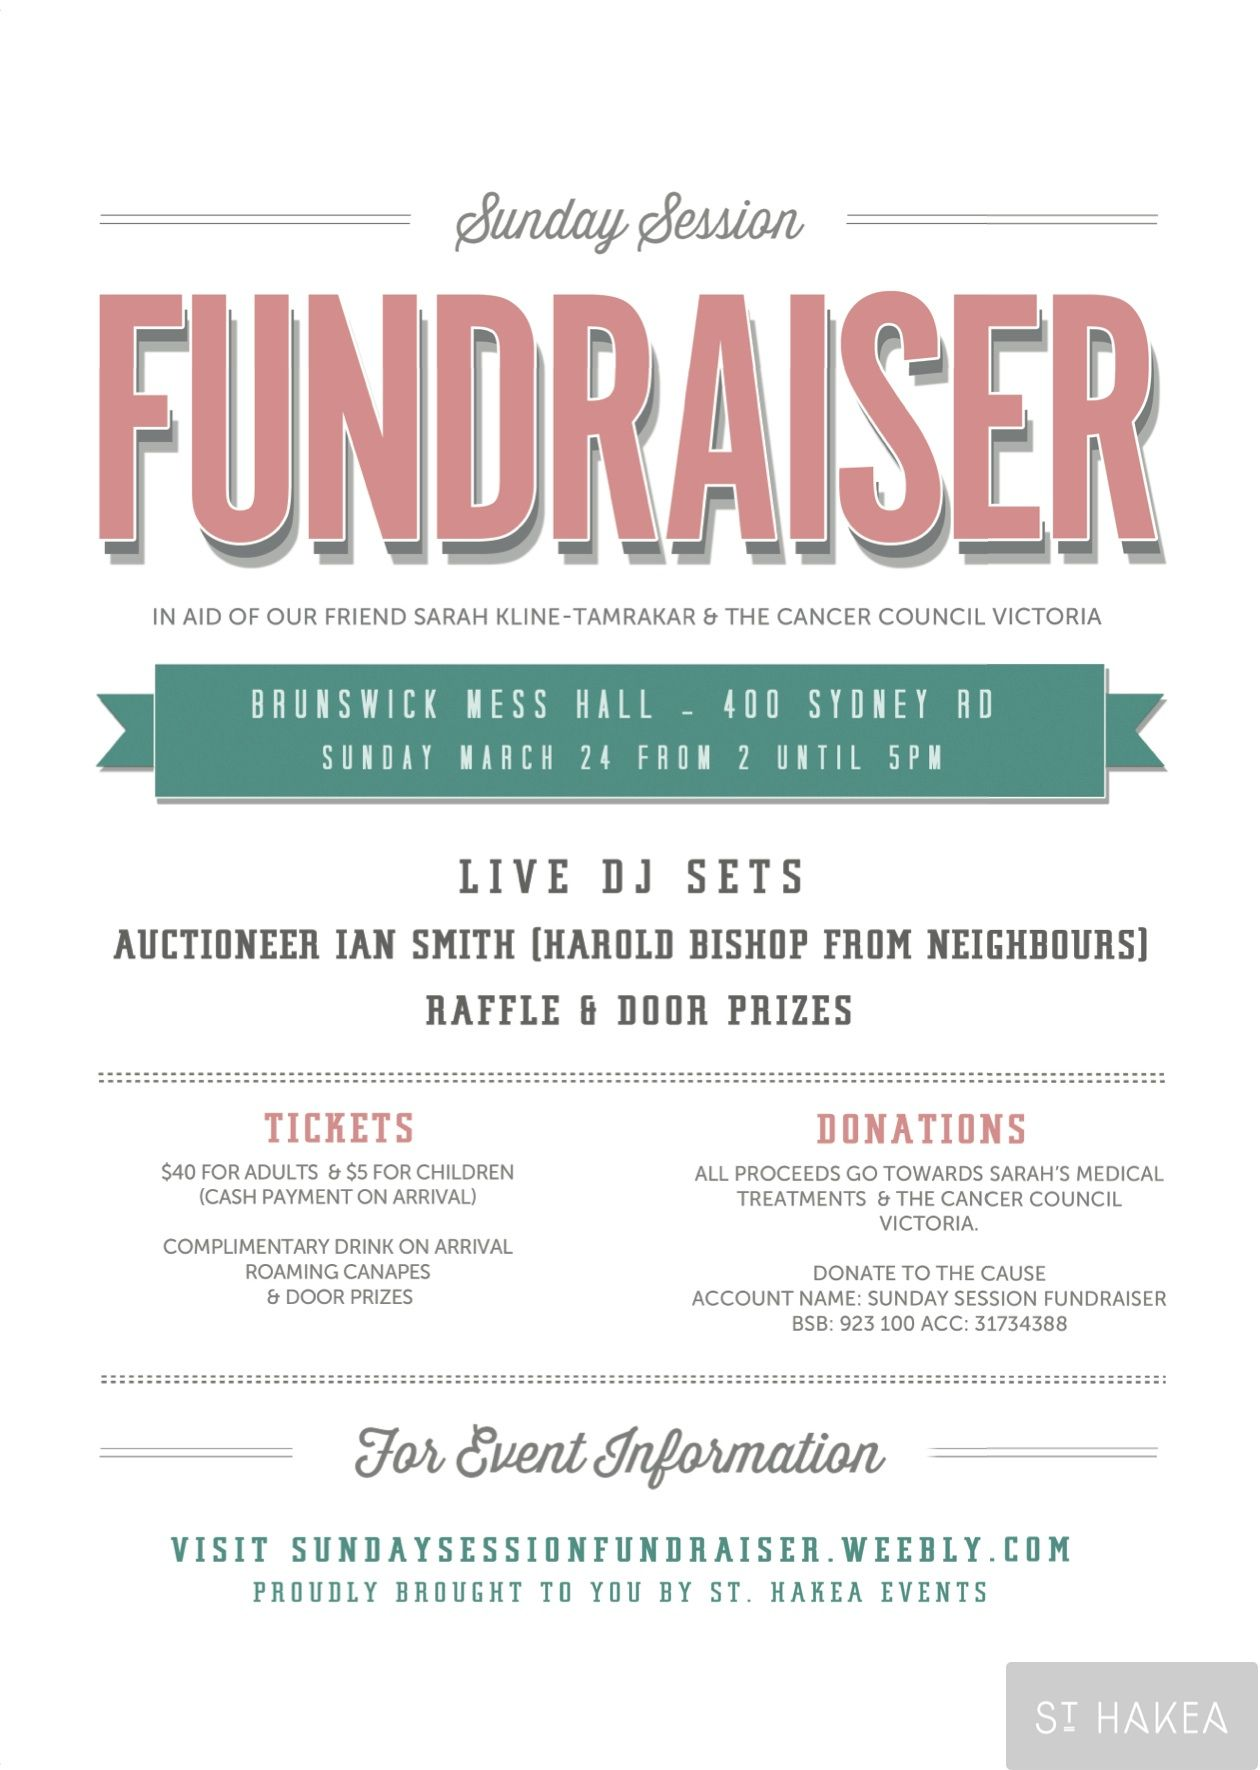 Sunday Session Fundraiser Event Flyer Proudly Bought To You By St